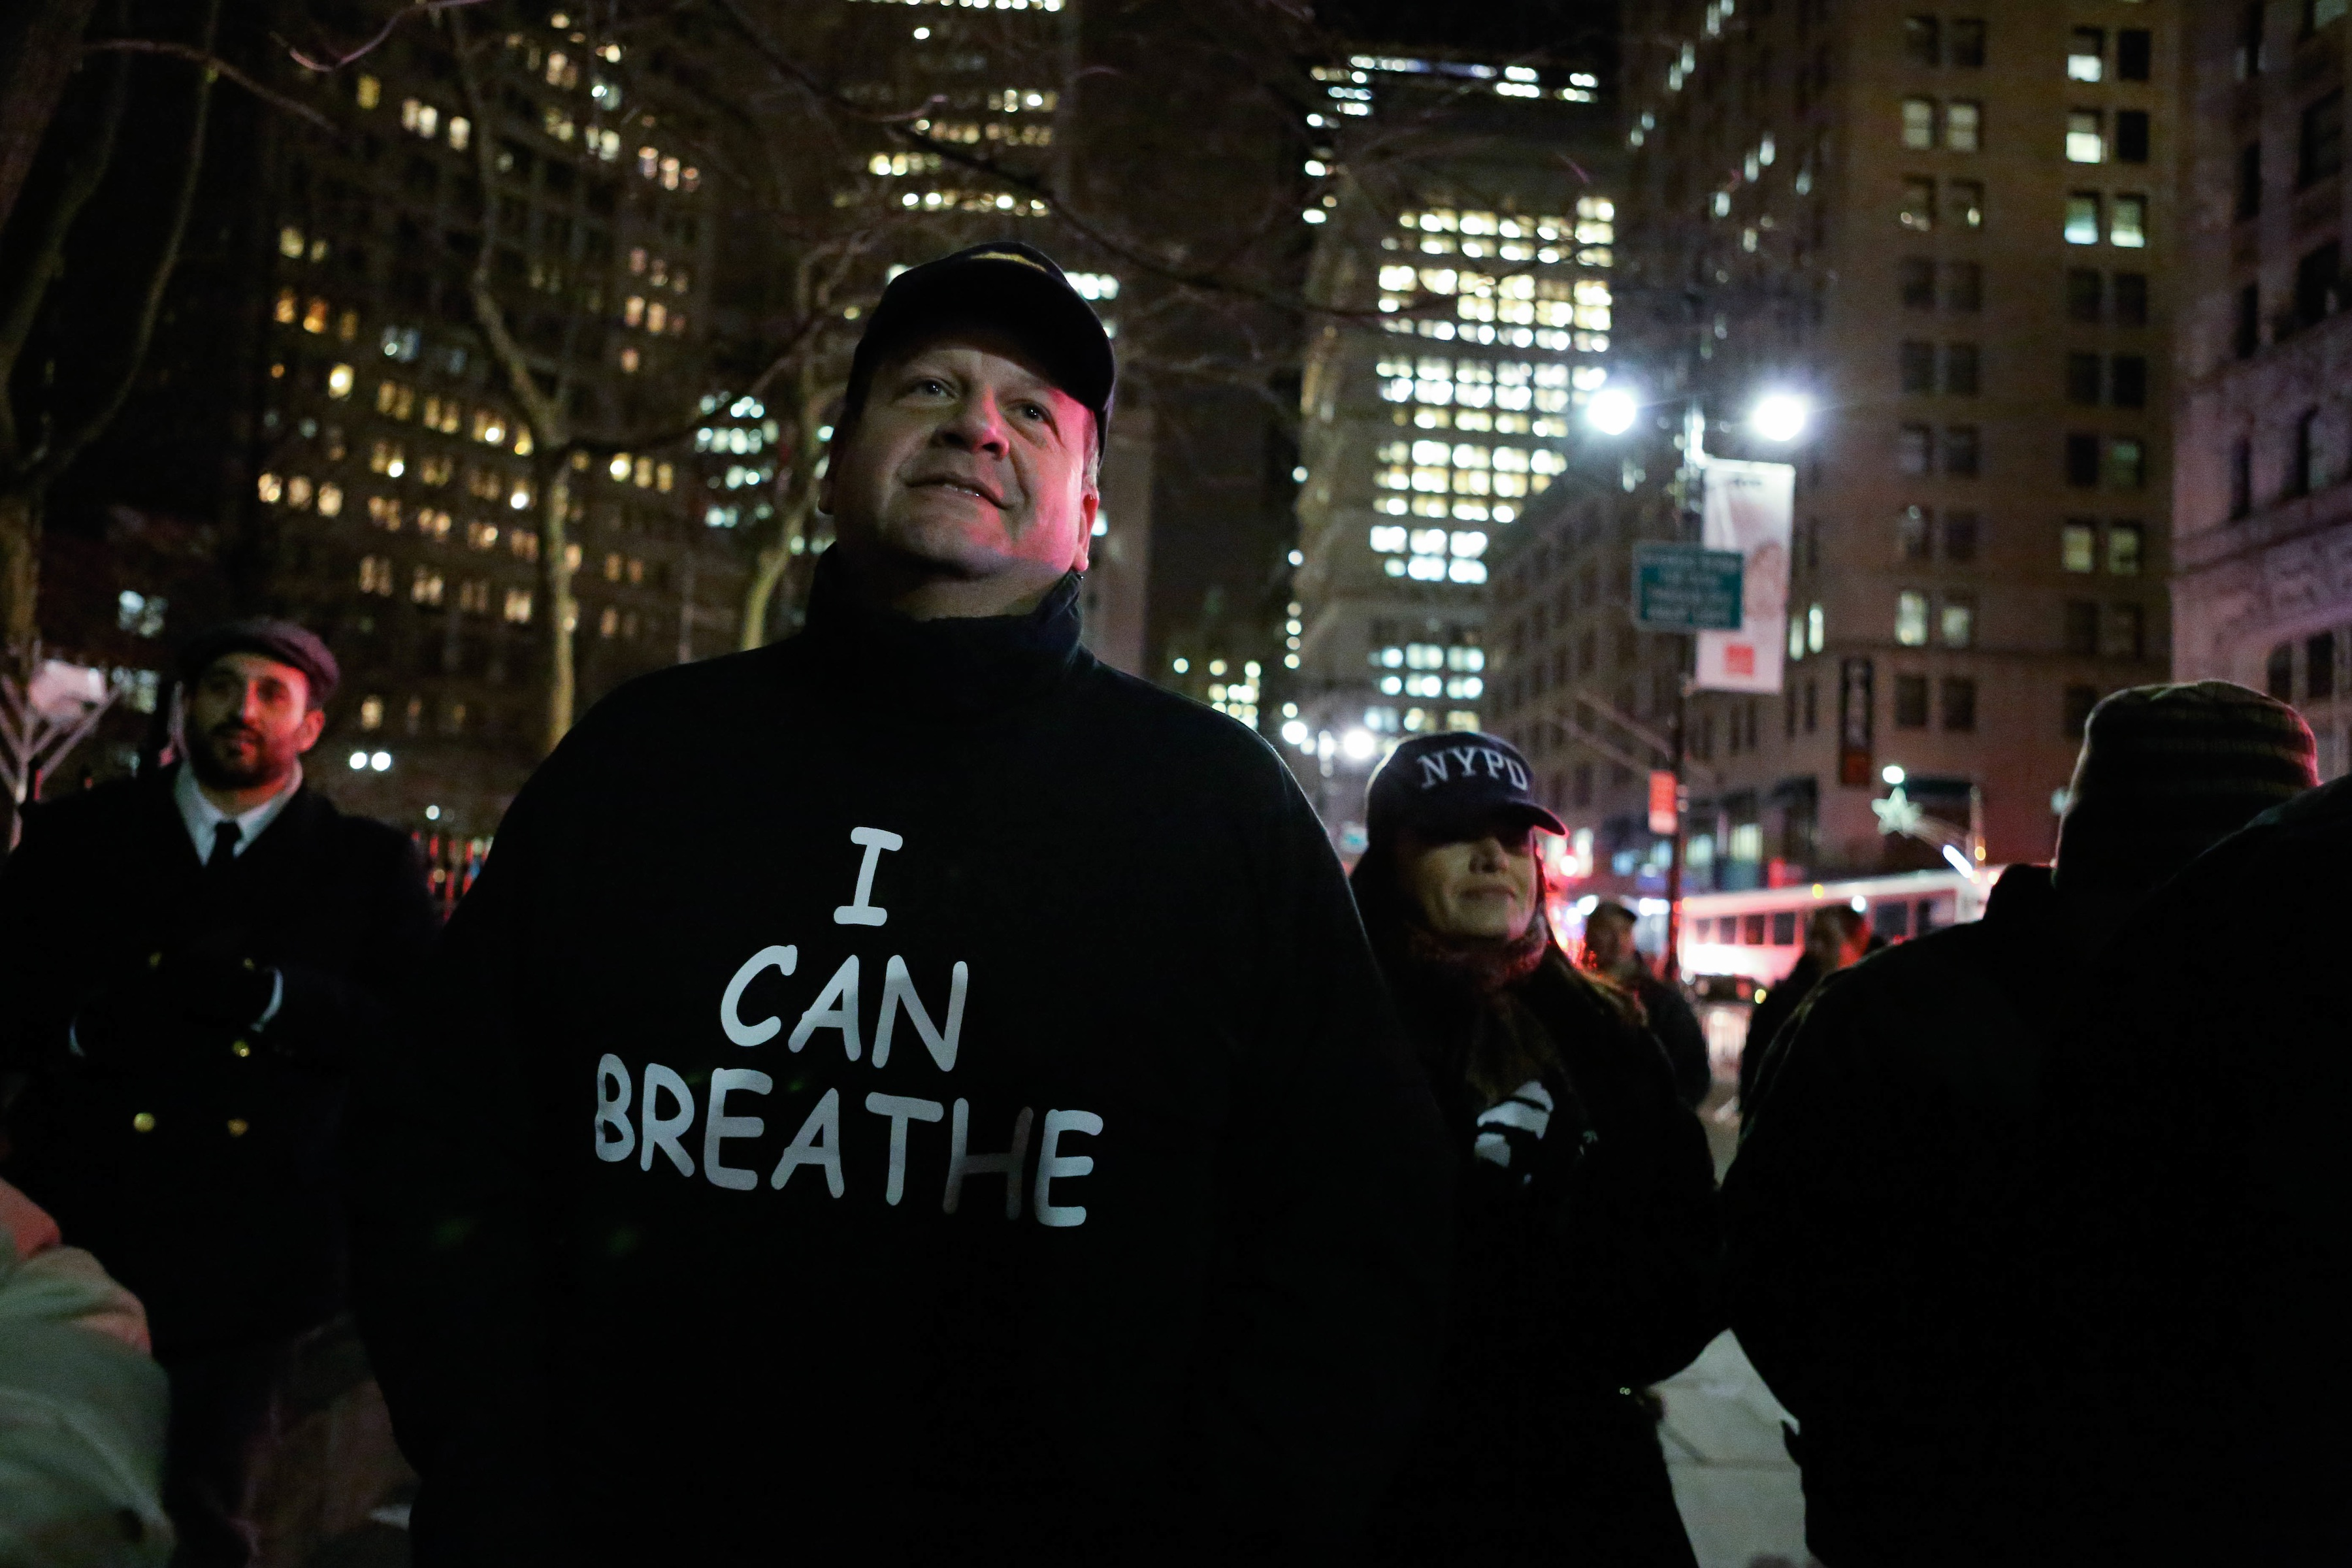 Pro-NYPD Rally in New York City attended by Anti-police brutality protestors